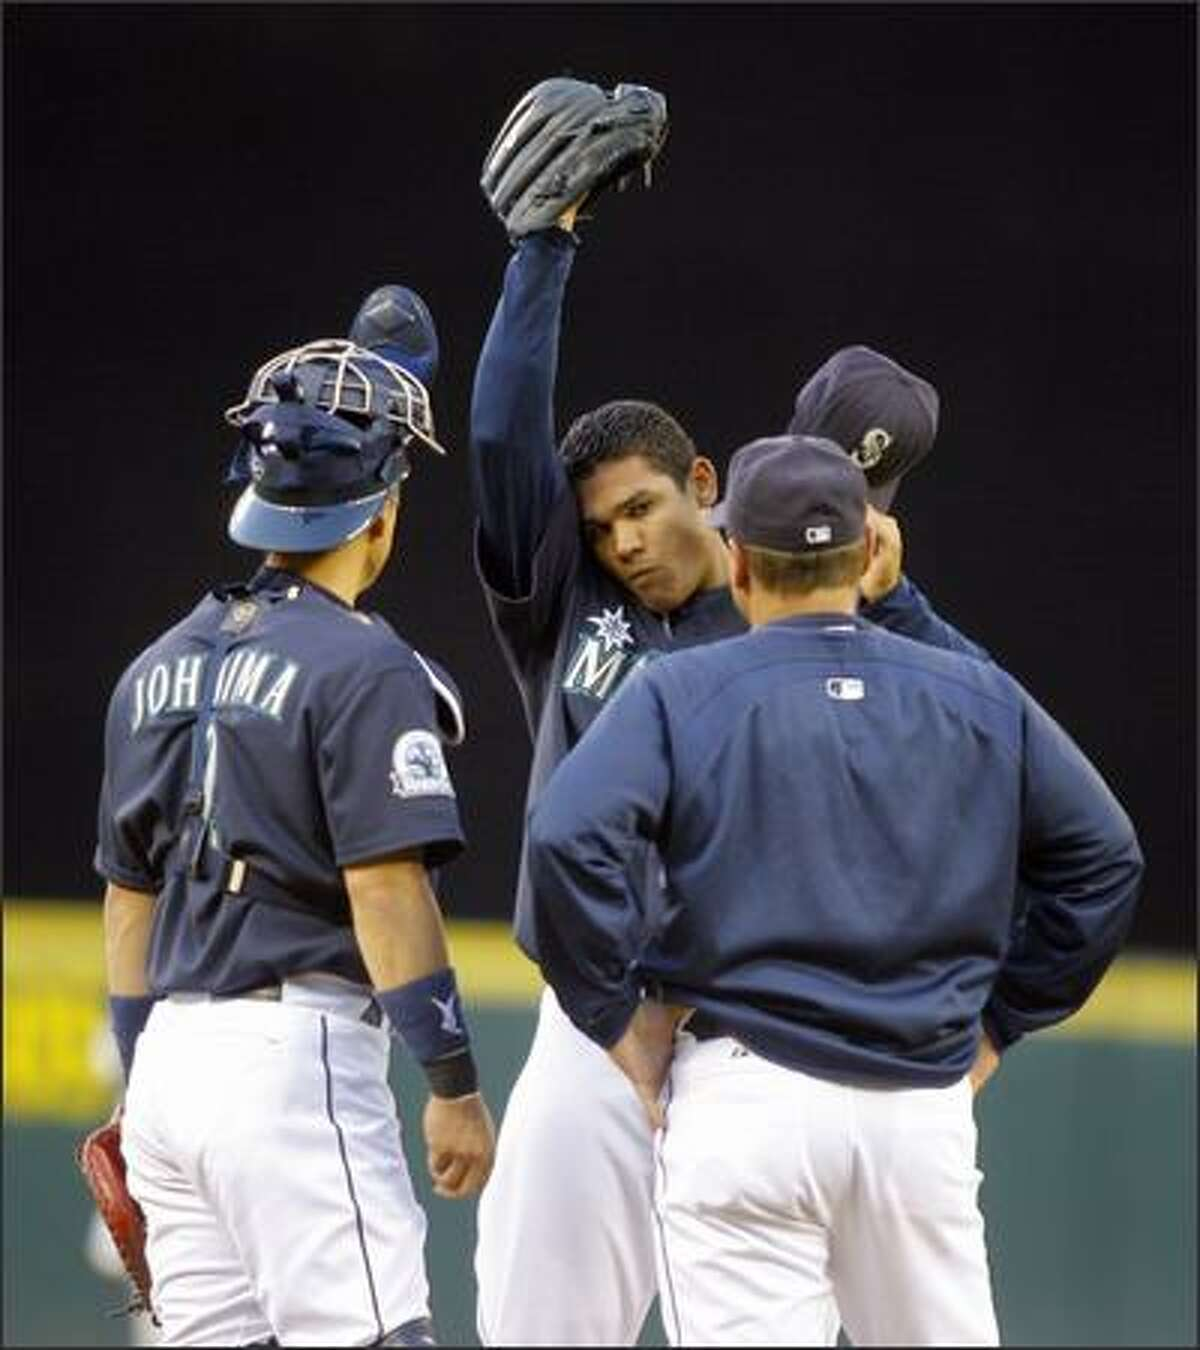 Seattle Mariner's pitcher Felix Hernandez stretches as he talks with catcher Kenji Johjima during a game against the Minnesota Twins at Safeco Field Monday, August 13, 2007.